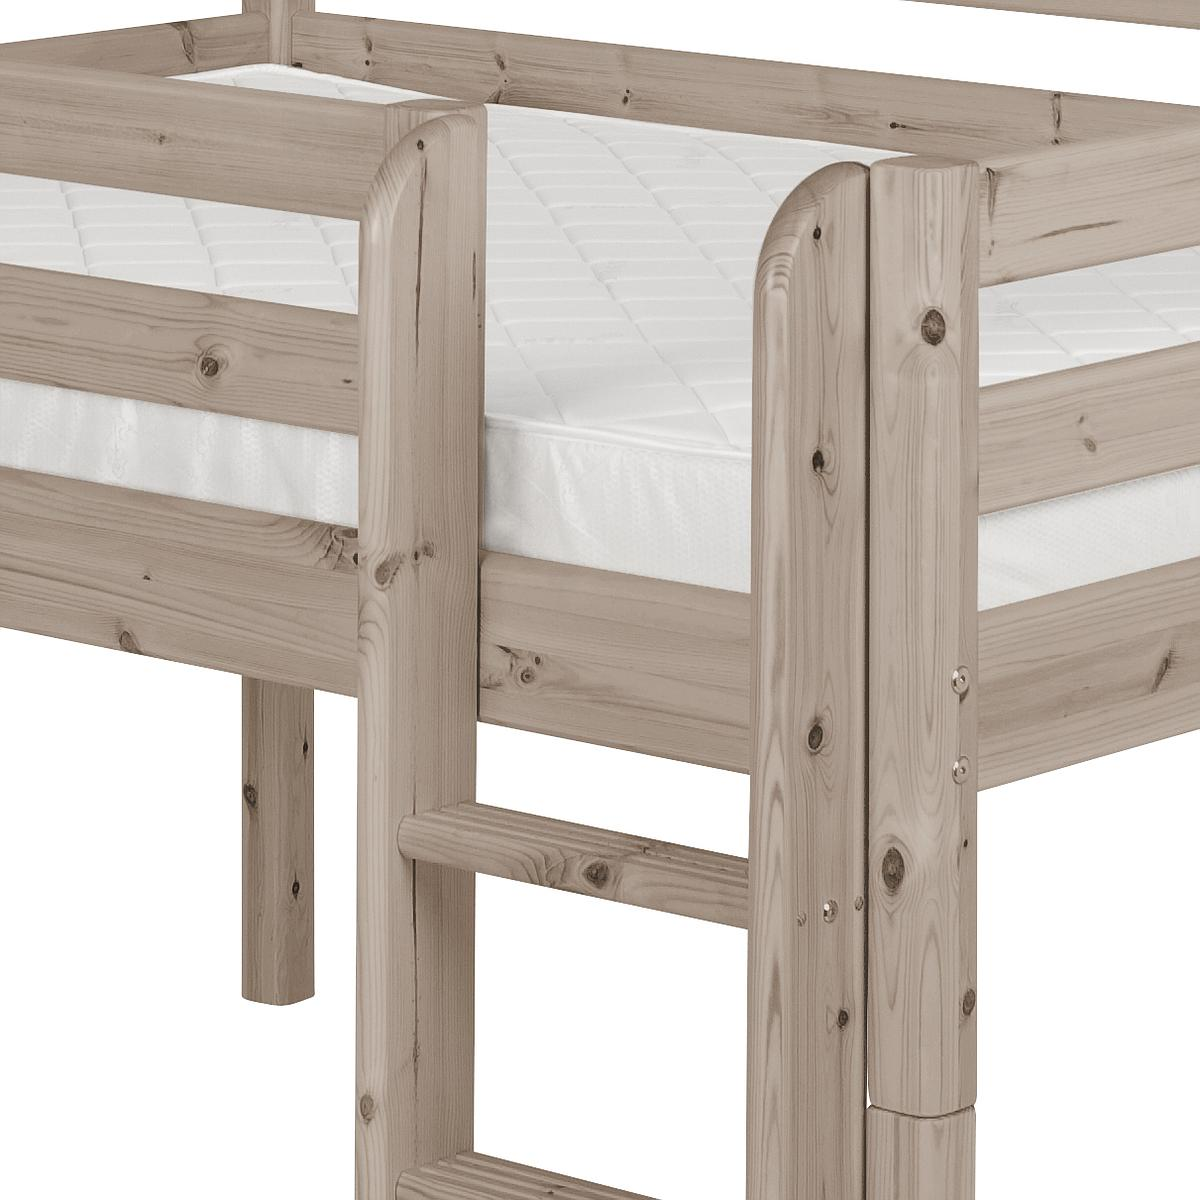 Cama media alta 90x190 CLASSIC Flexa escalera recta terra